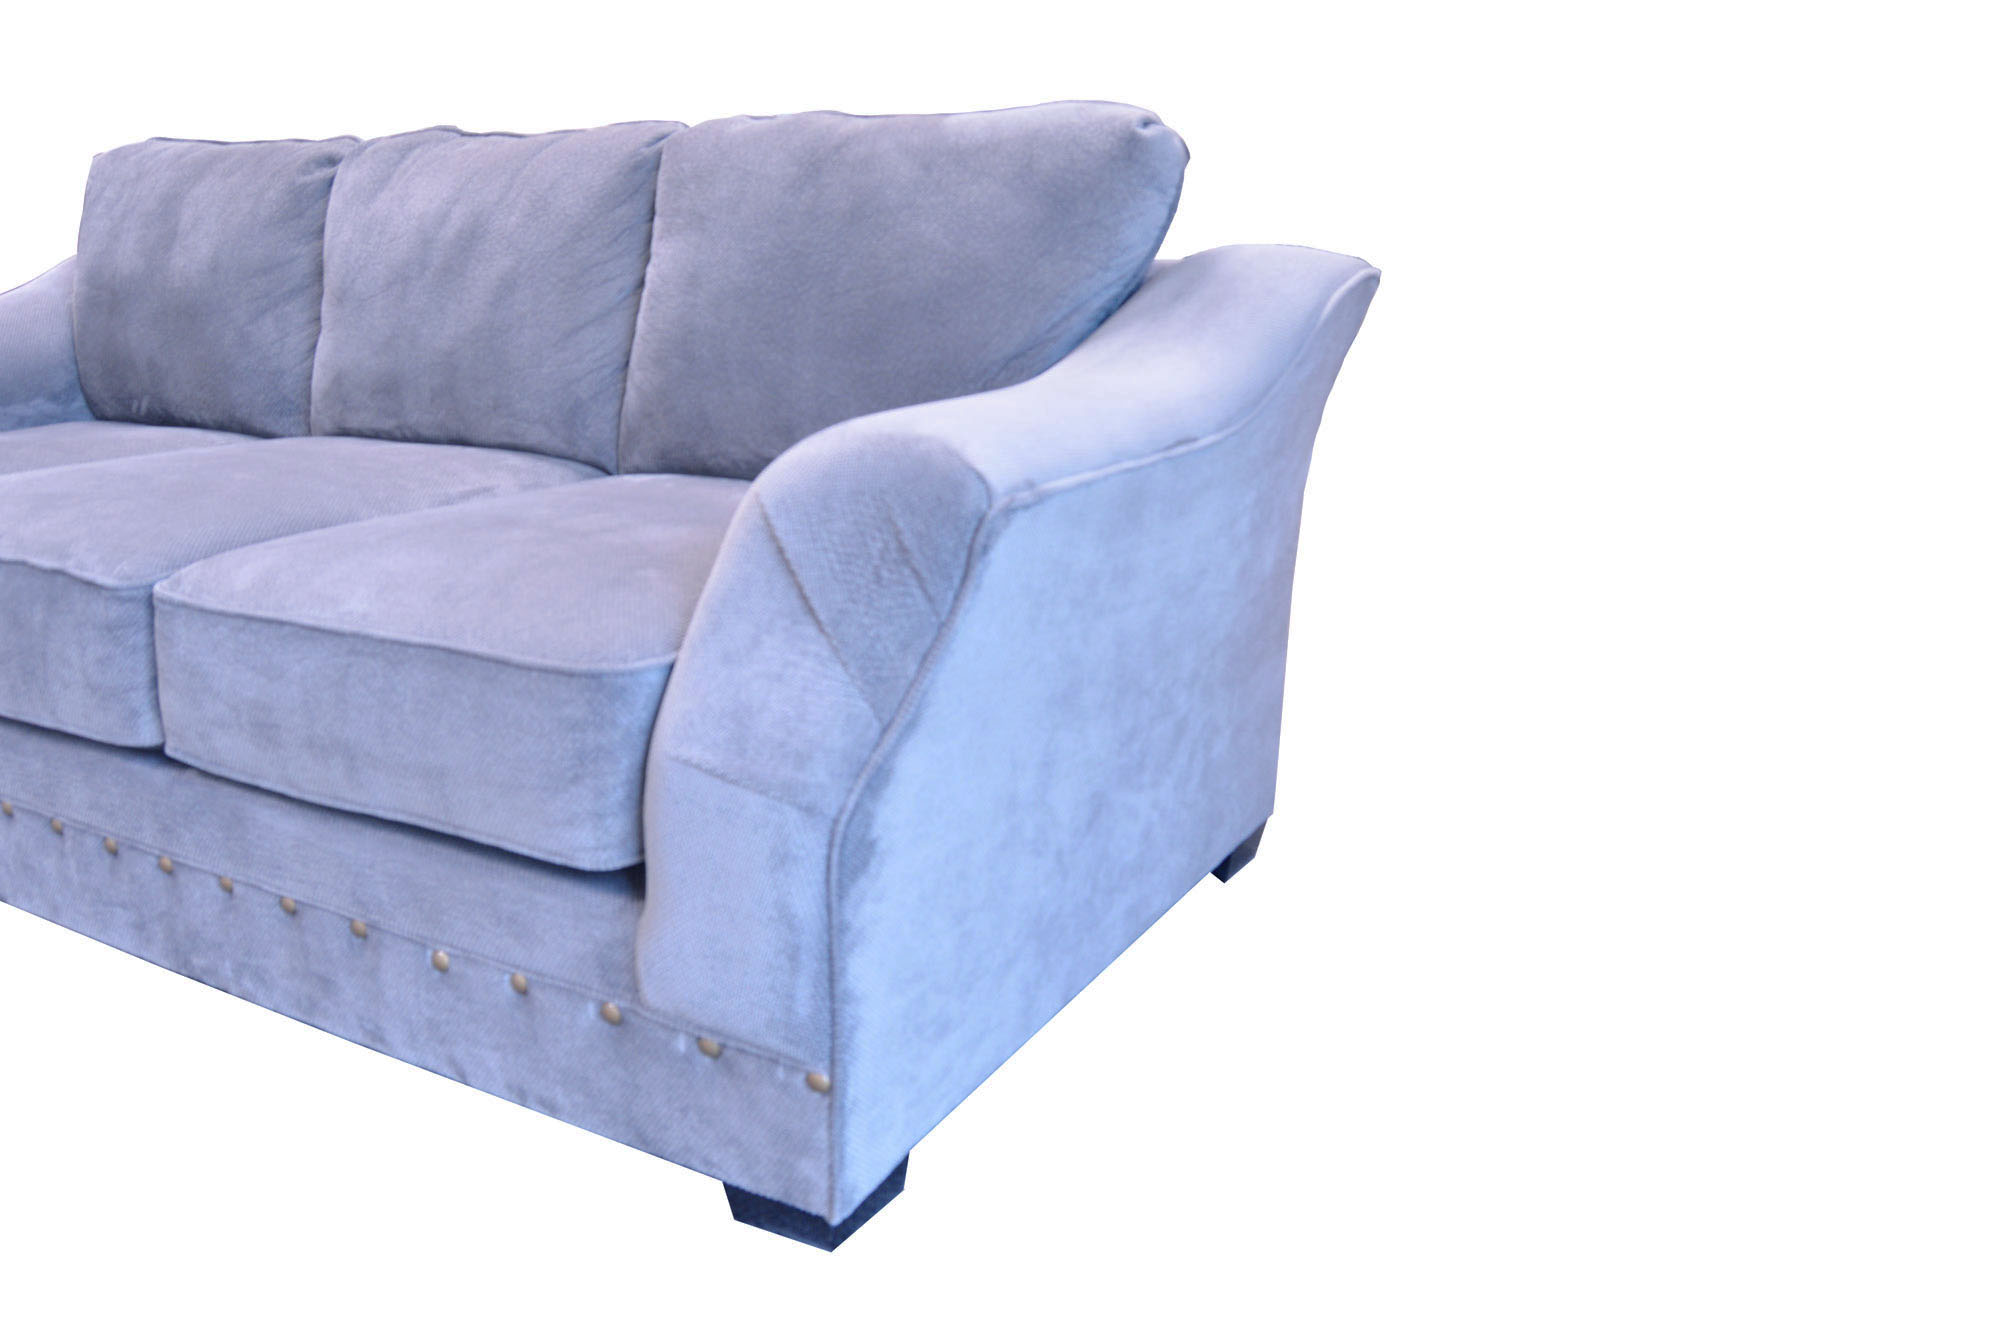 custom sofas for less concord best inexpensive sofa brands monterey 4